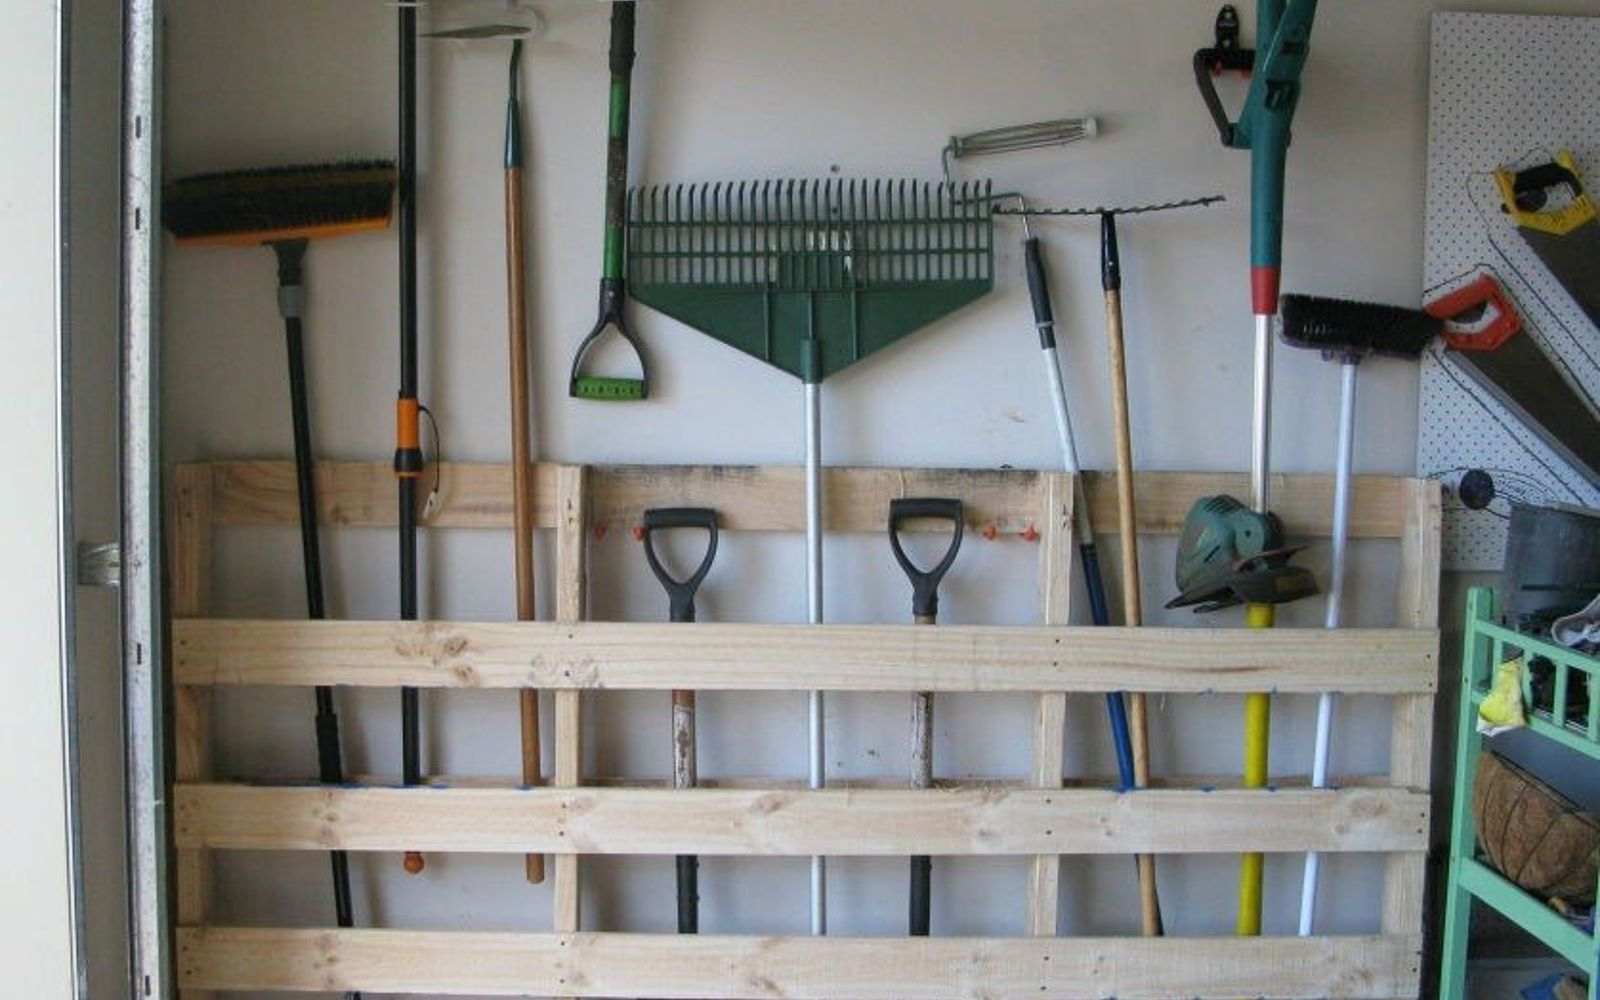 s 17 little known ways to use your wasted wall space, organizing, storage ideas, wall decor, Attach pallets to the garage wall for tools